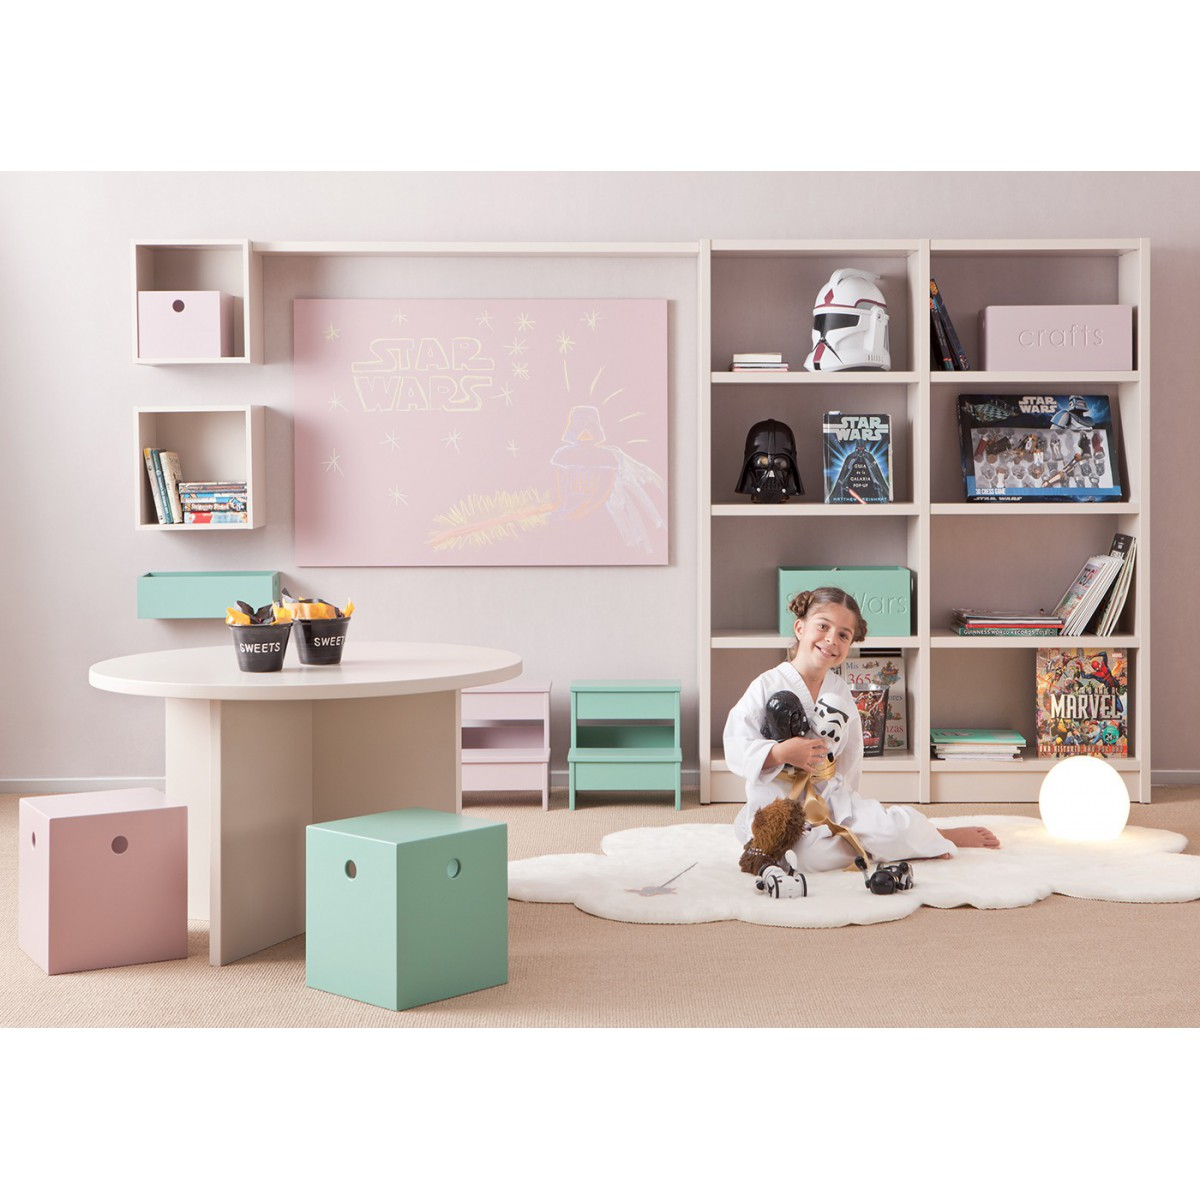 cheap mobilier pour enfants de qualit et design sign. Black Bedroom Furniture Sets. Home Design Ideas